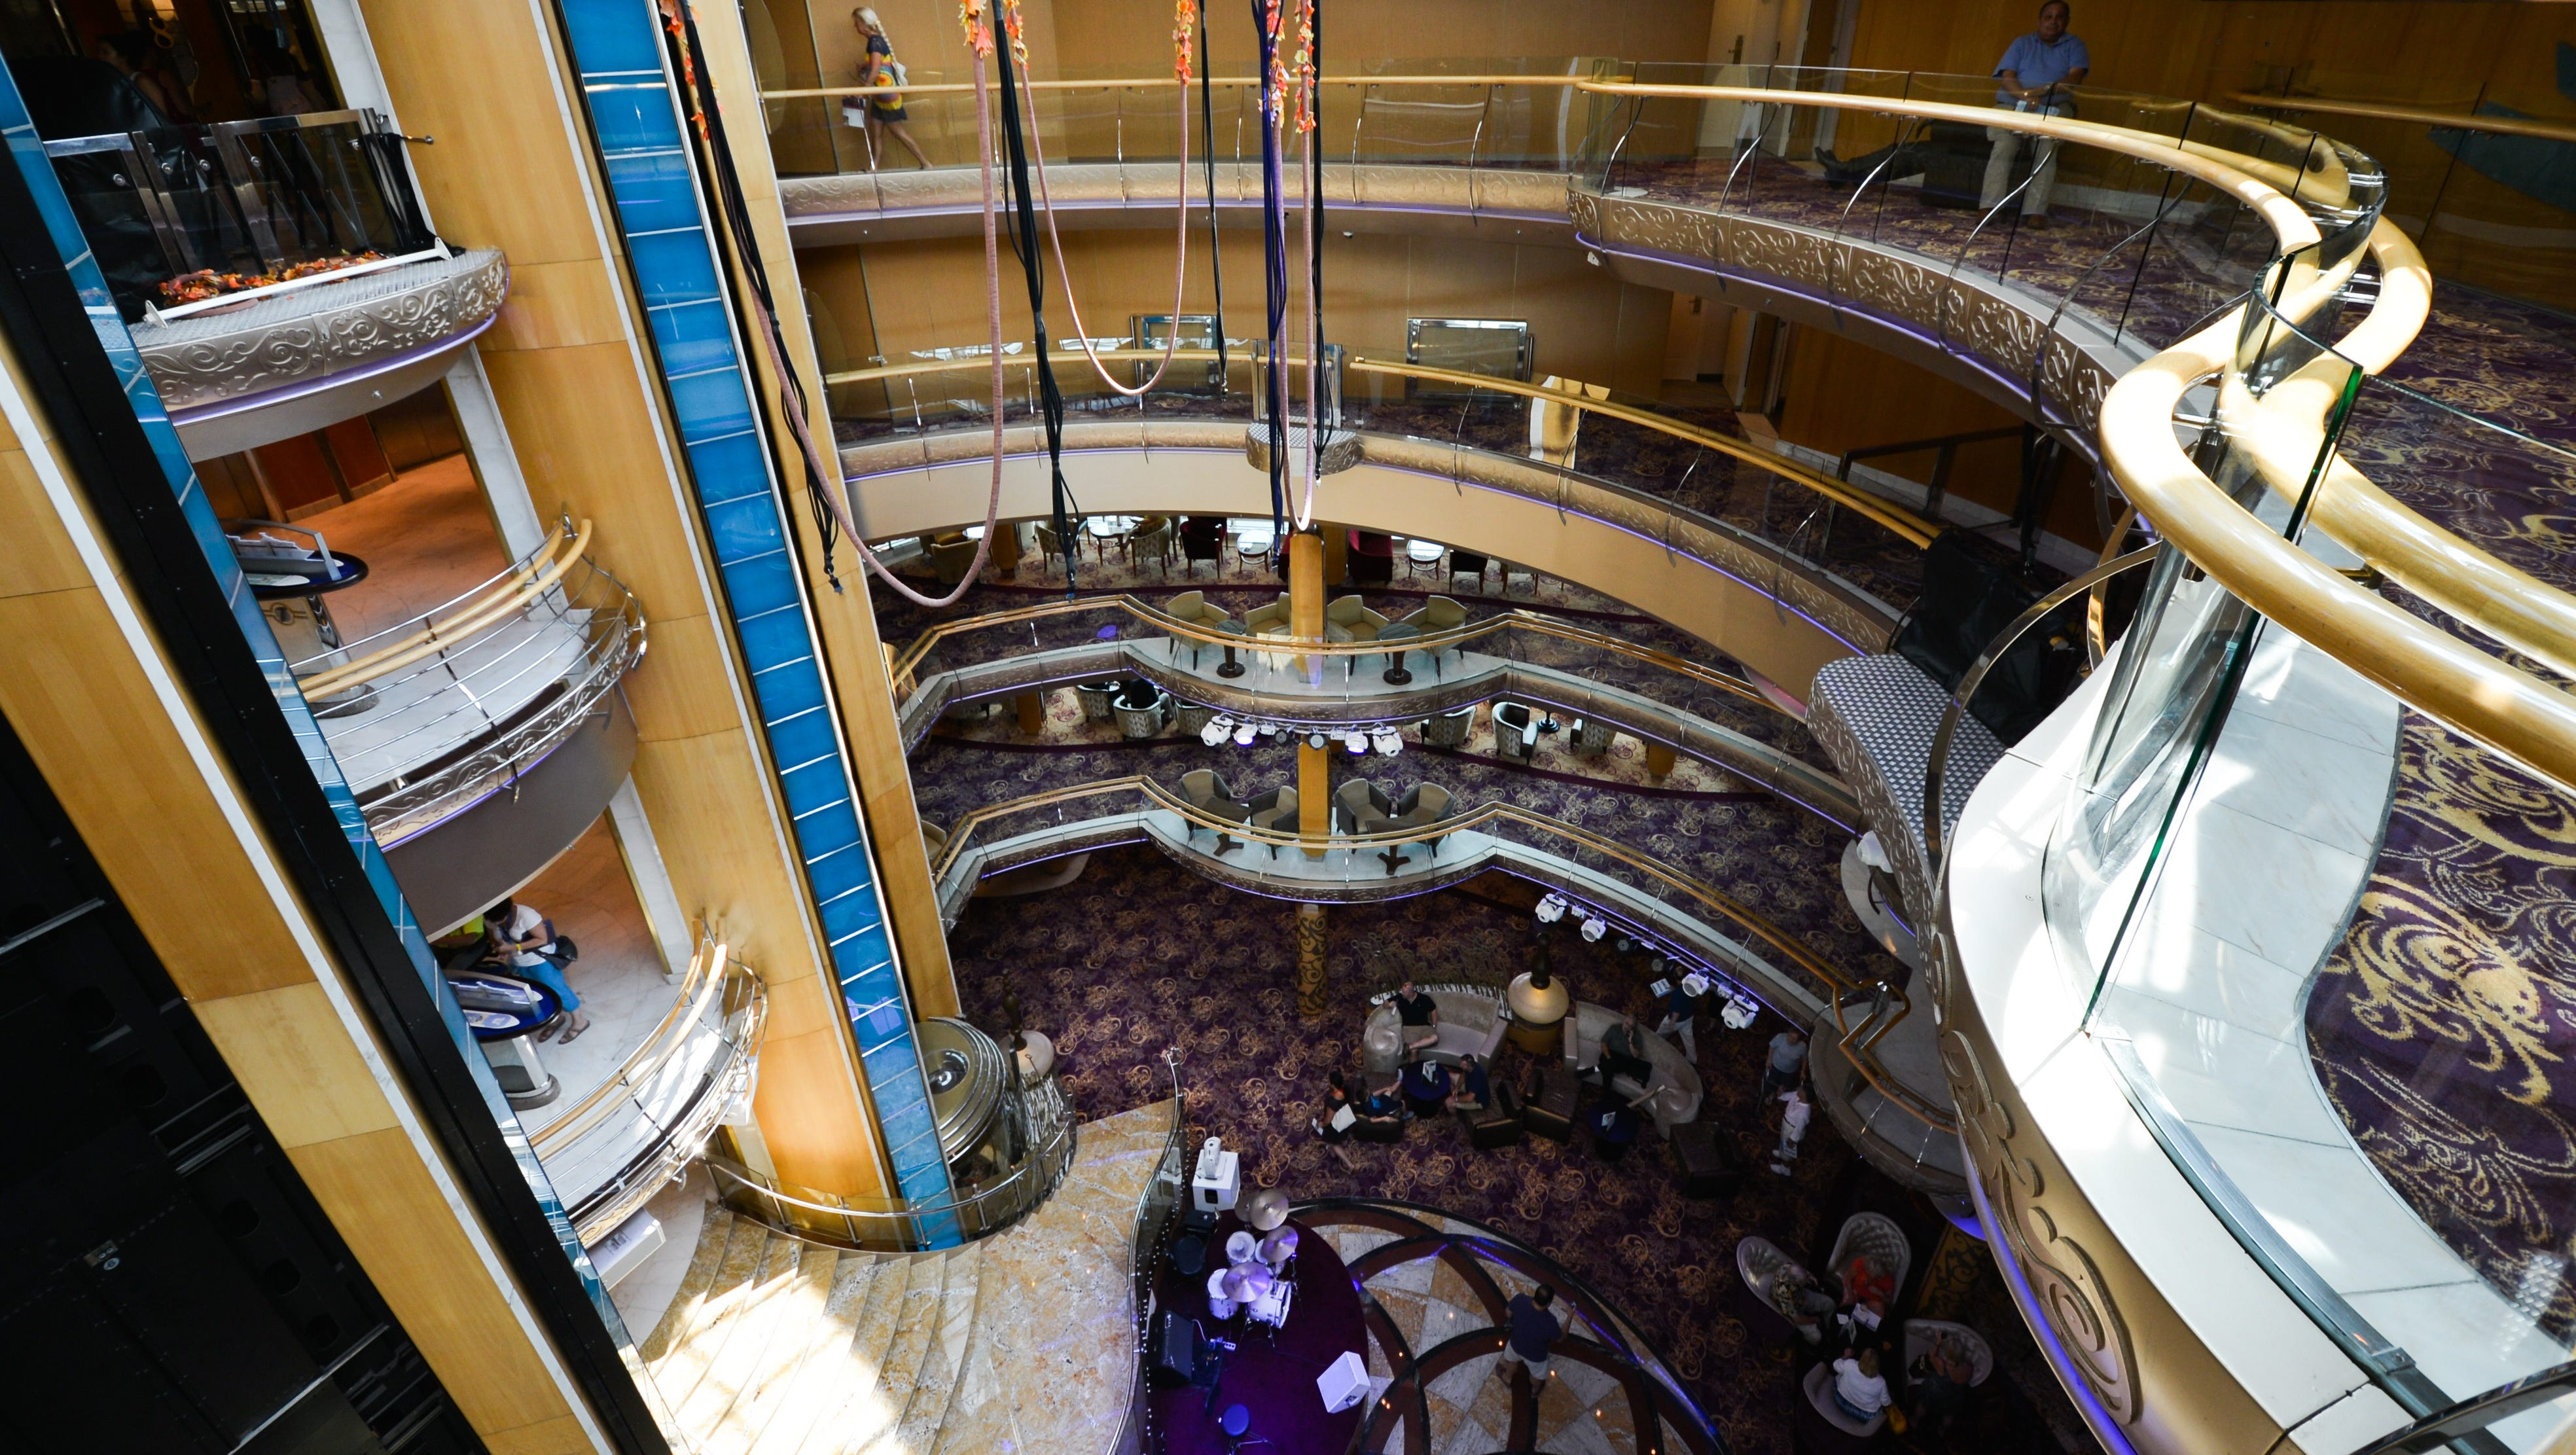 The Centrum was modified during Grandeur of the Seas' 2012 makeover to allow for three new aerialist shows in which performers dangle from lines attached to the ceiling.